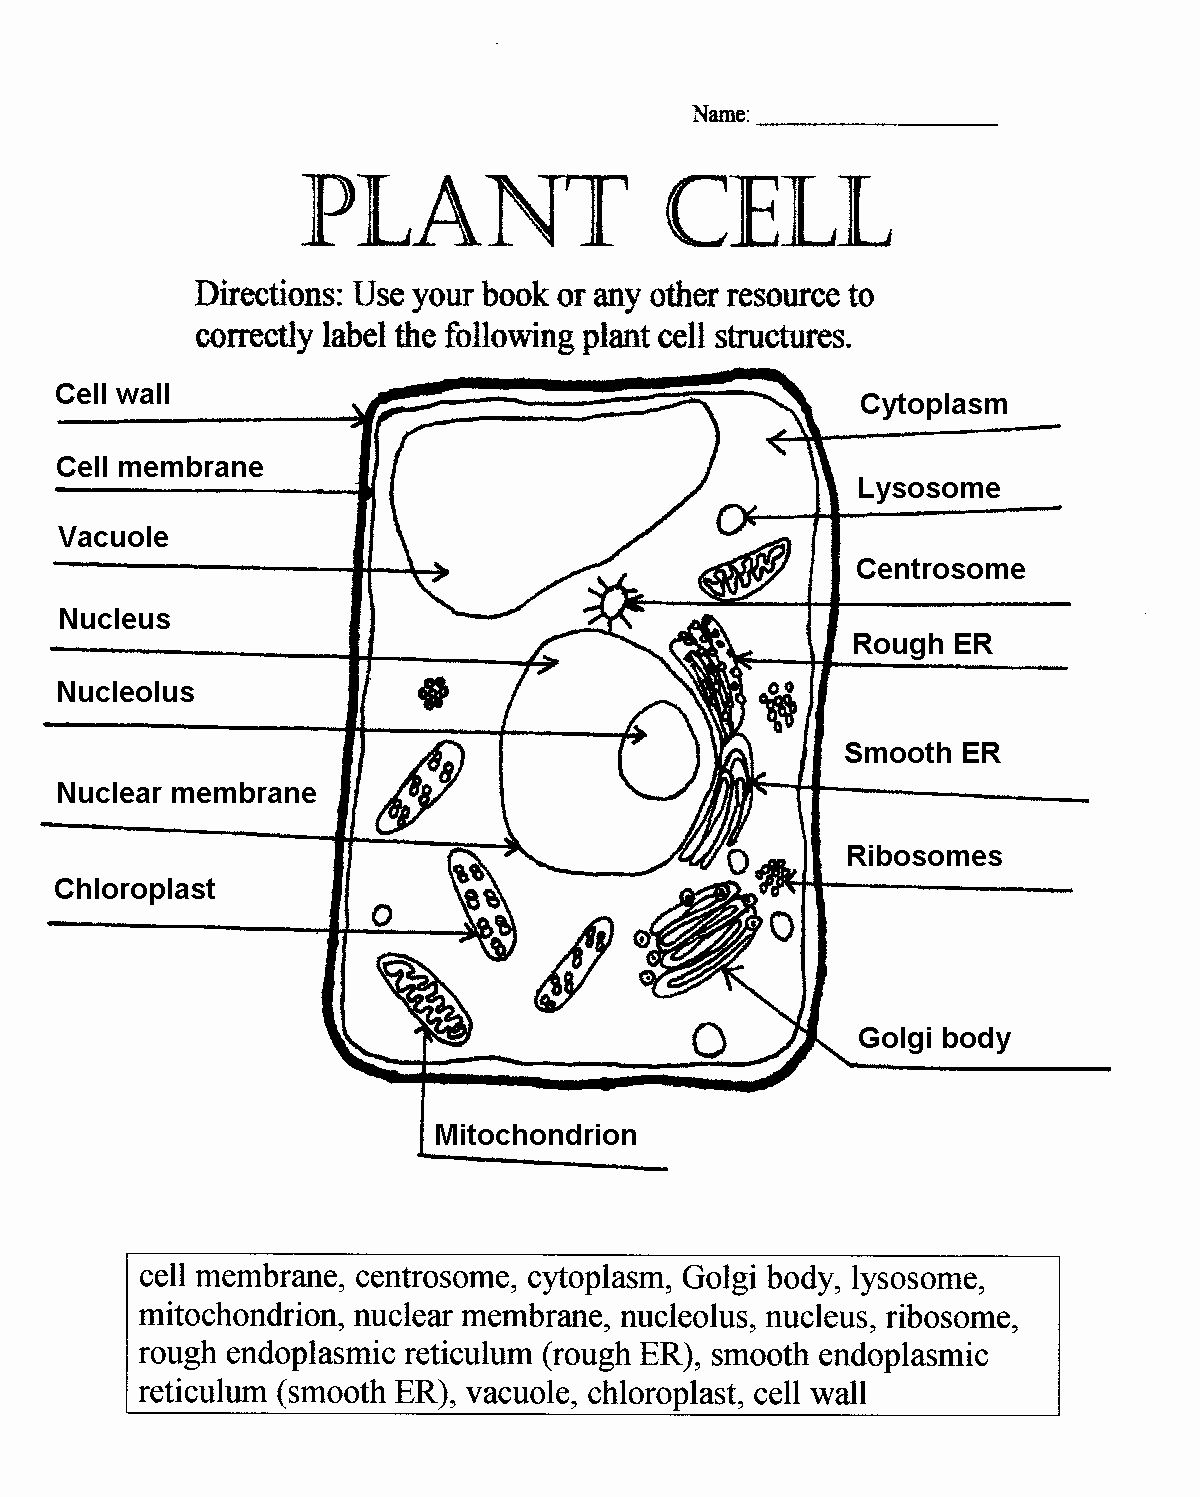 Animal And Plant Cells Worksheet Inspirational 1000 Images About Plant Animal Cells On Pinterest Chessm Cells Worksheet Plant Cell Drawing Plant Cell Diagram